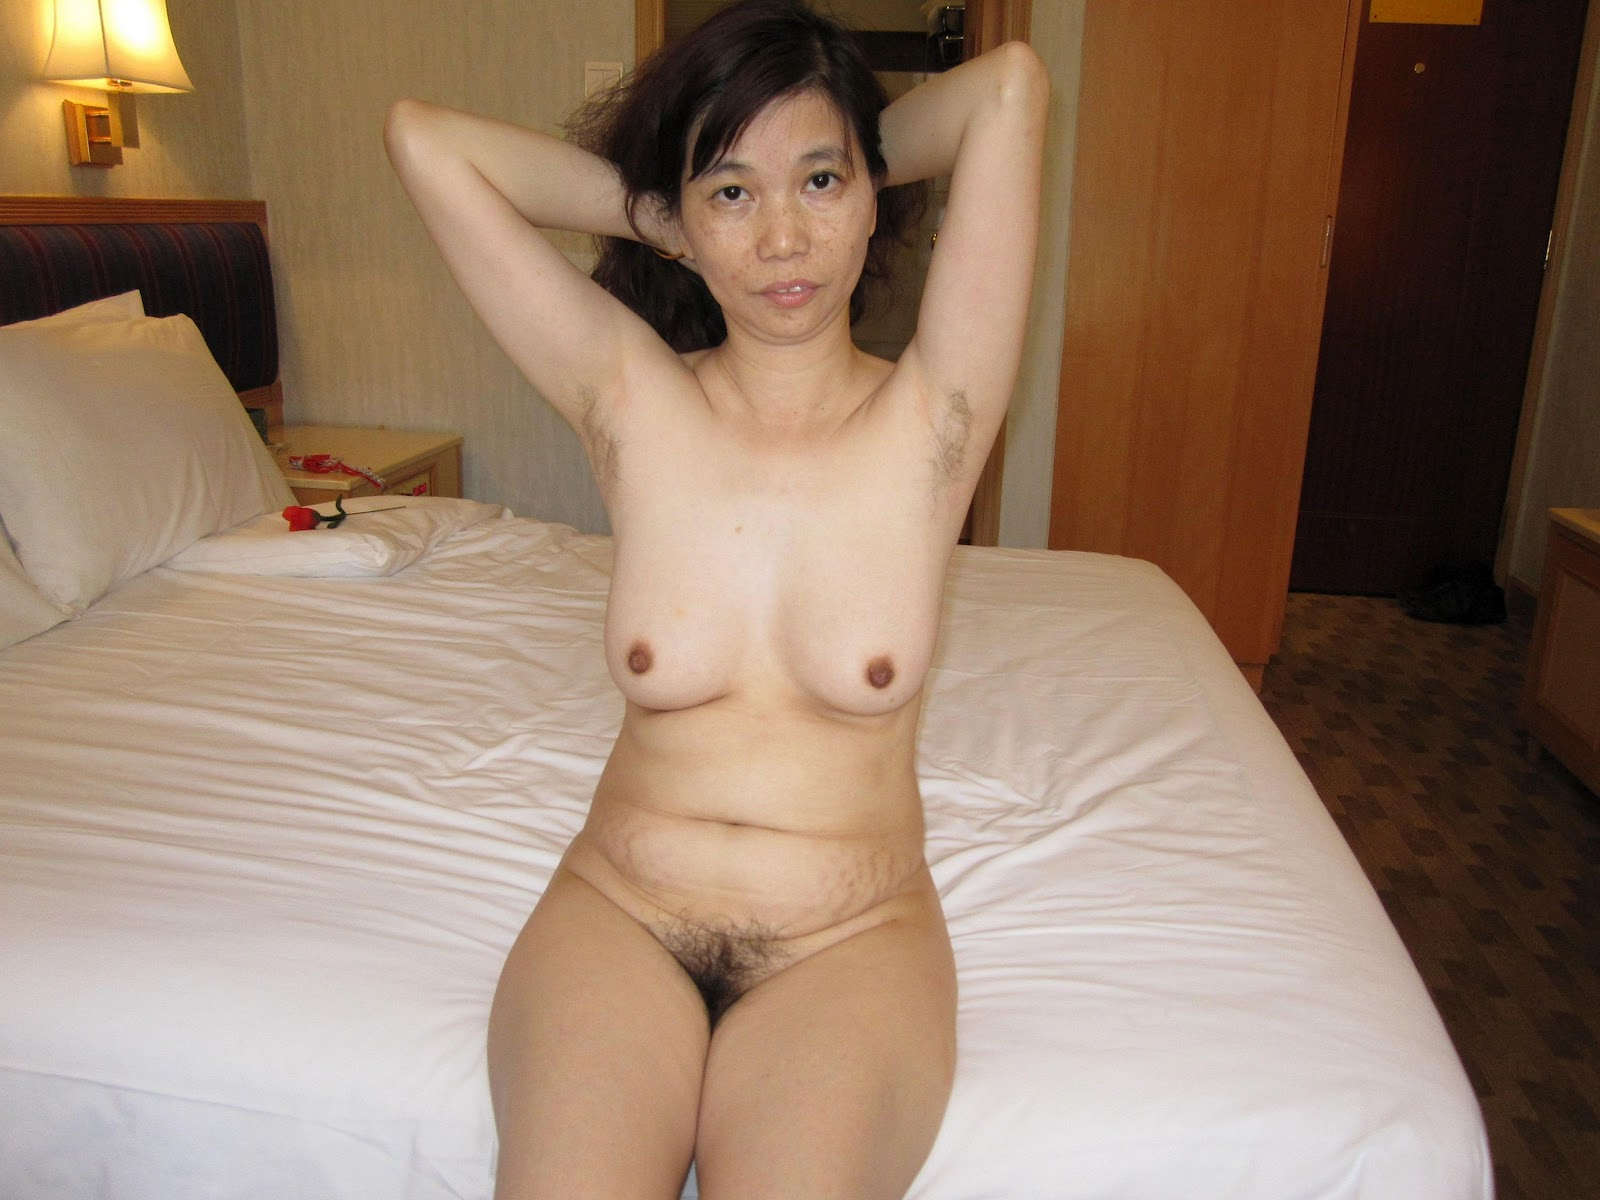 Drunk asian wife naked